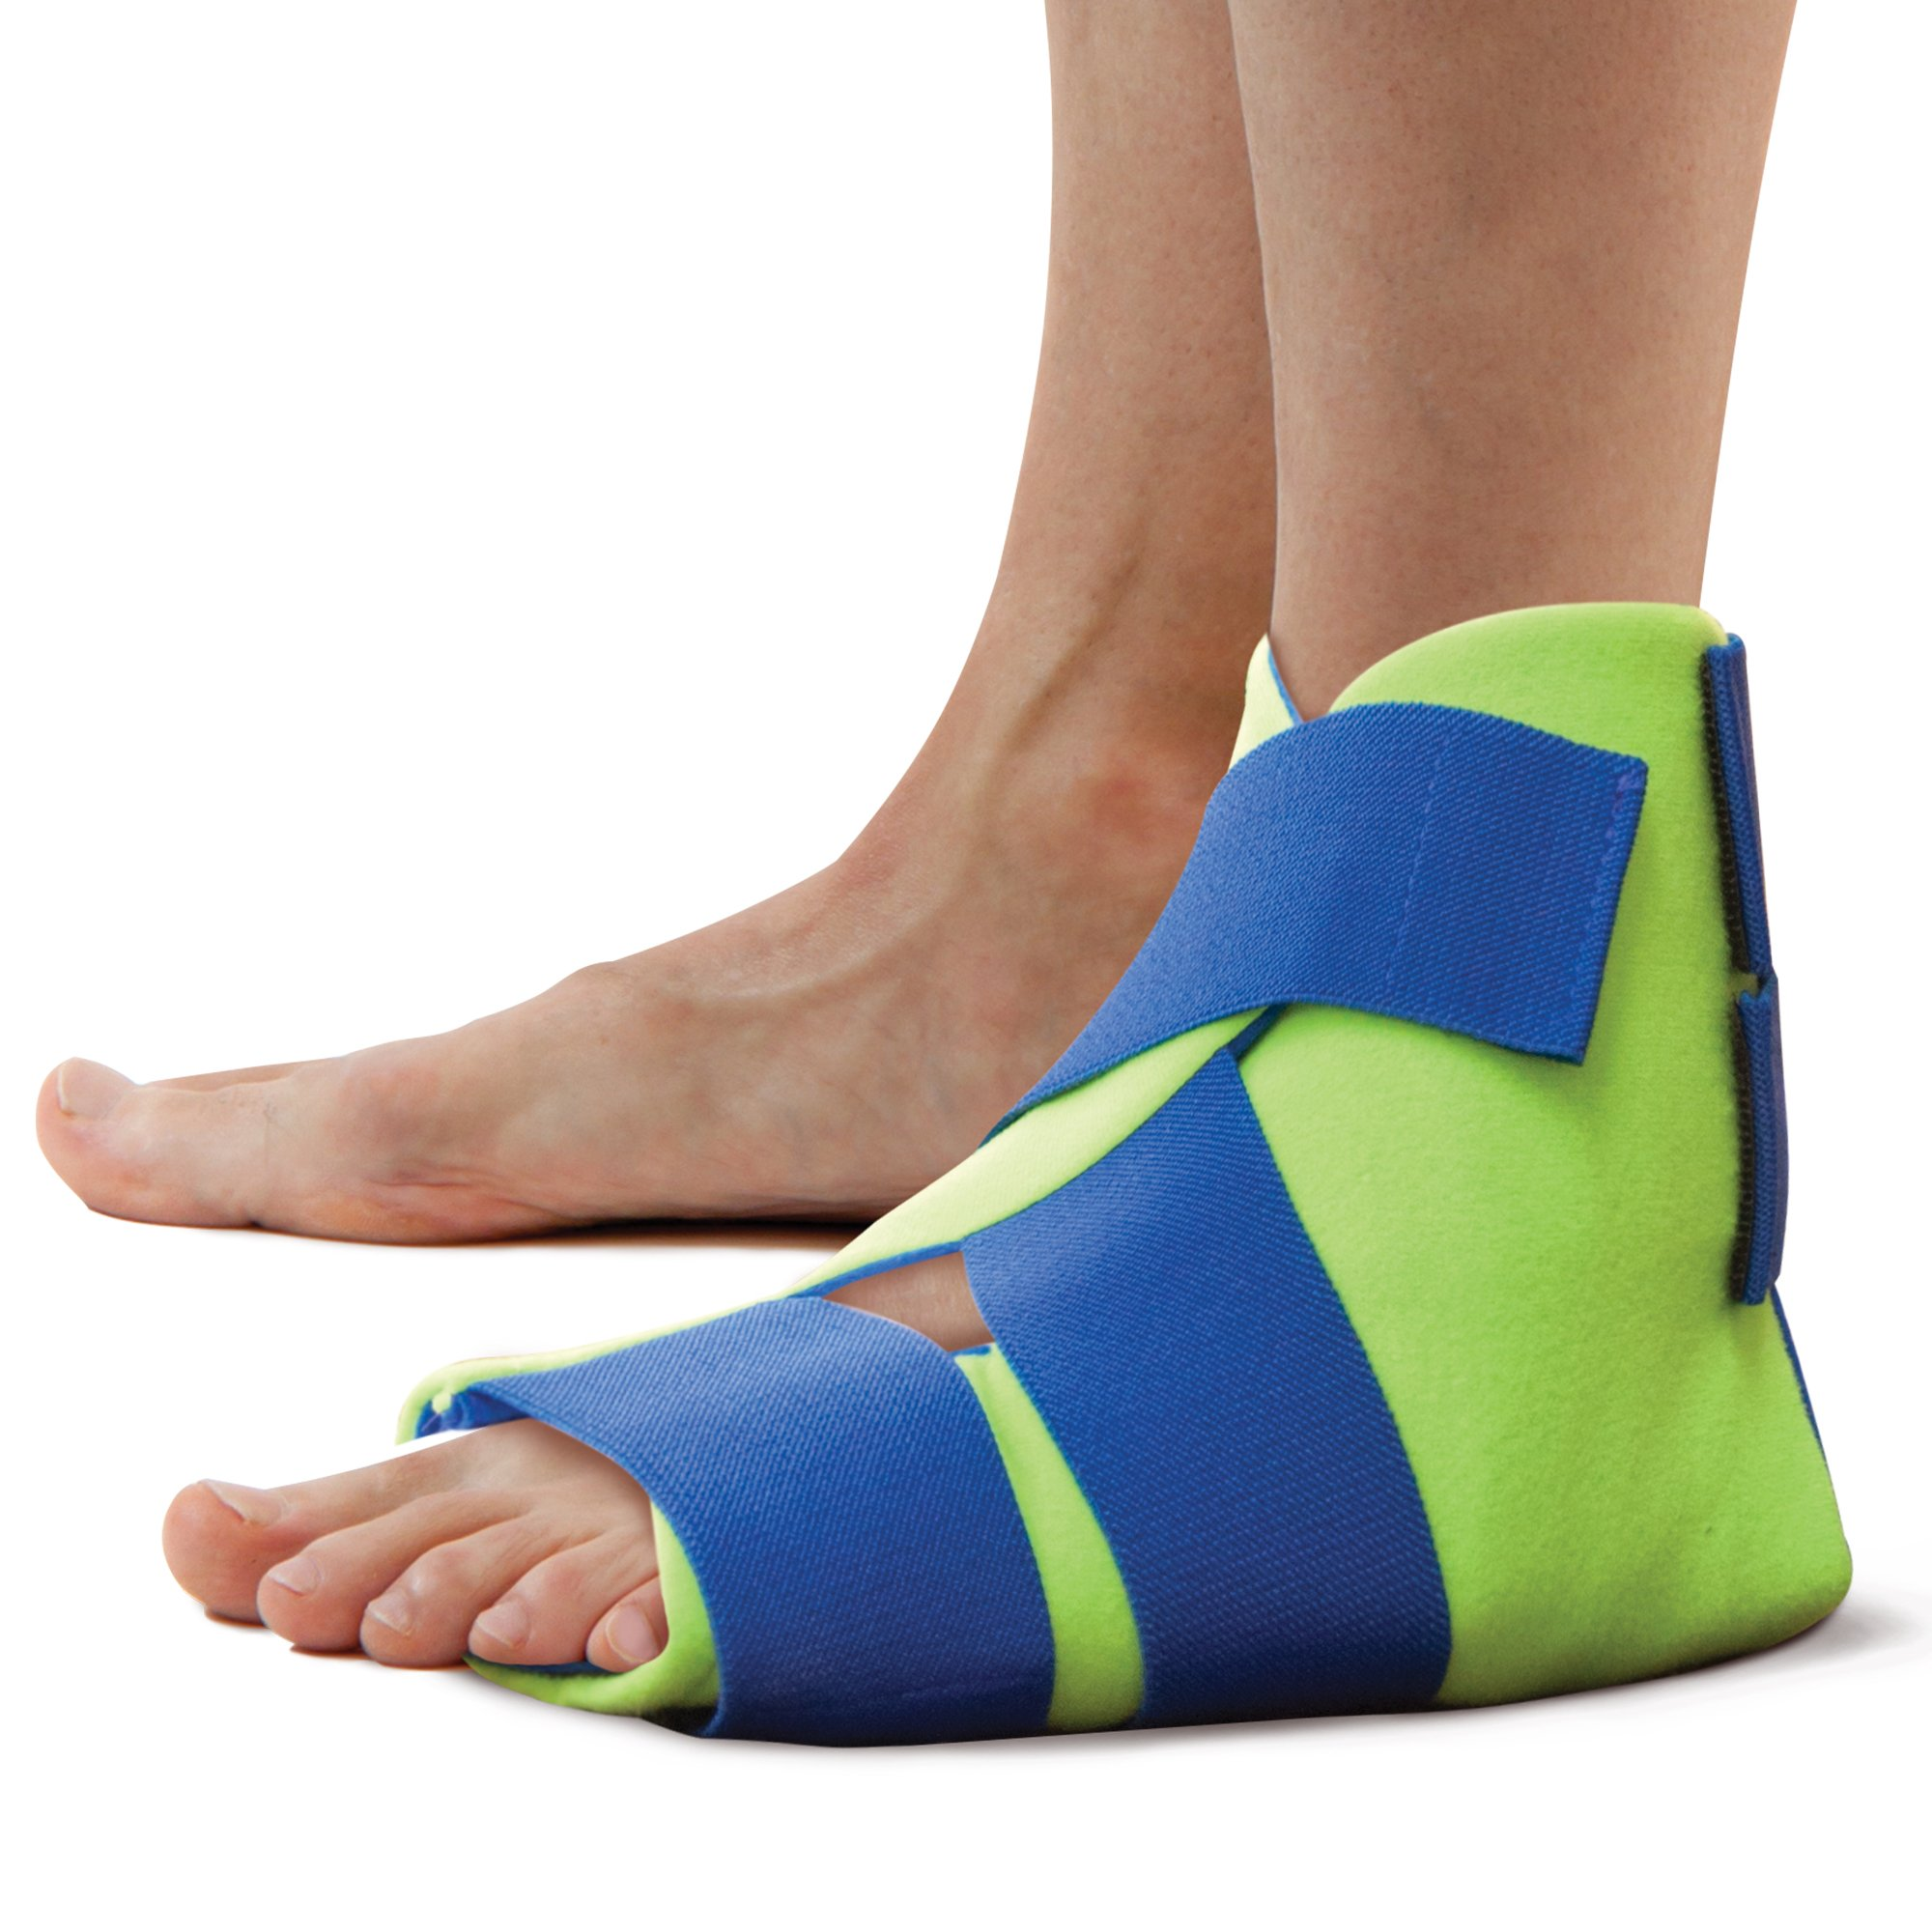 Polar Ice Foot and Ankle Wrap, Cold Therapy Ice Pack, Universal Size (Color May Vary) by Brownmed